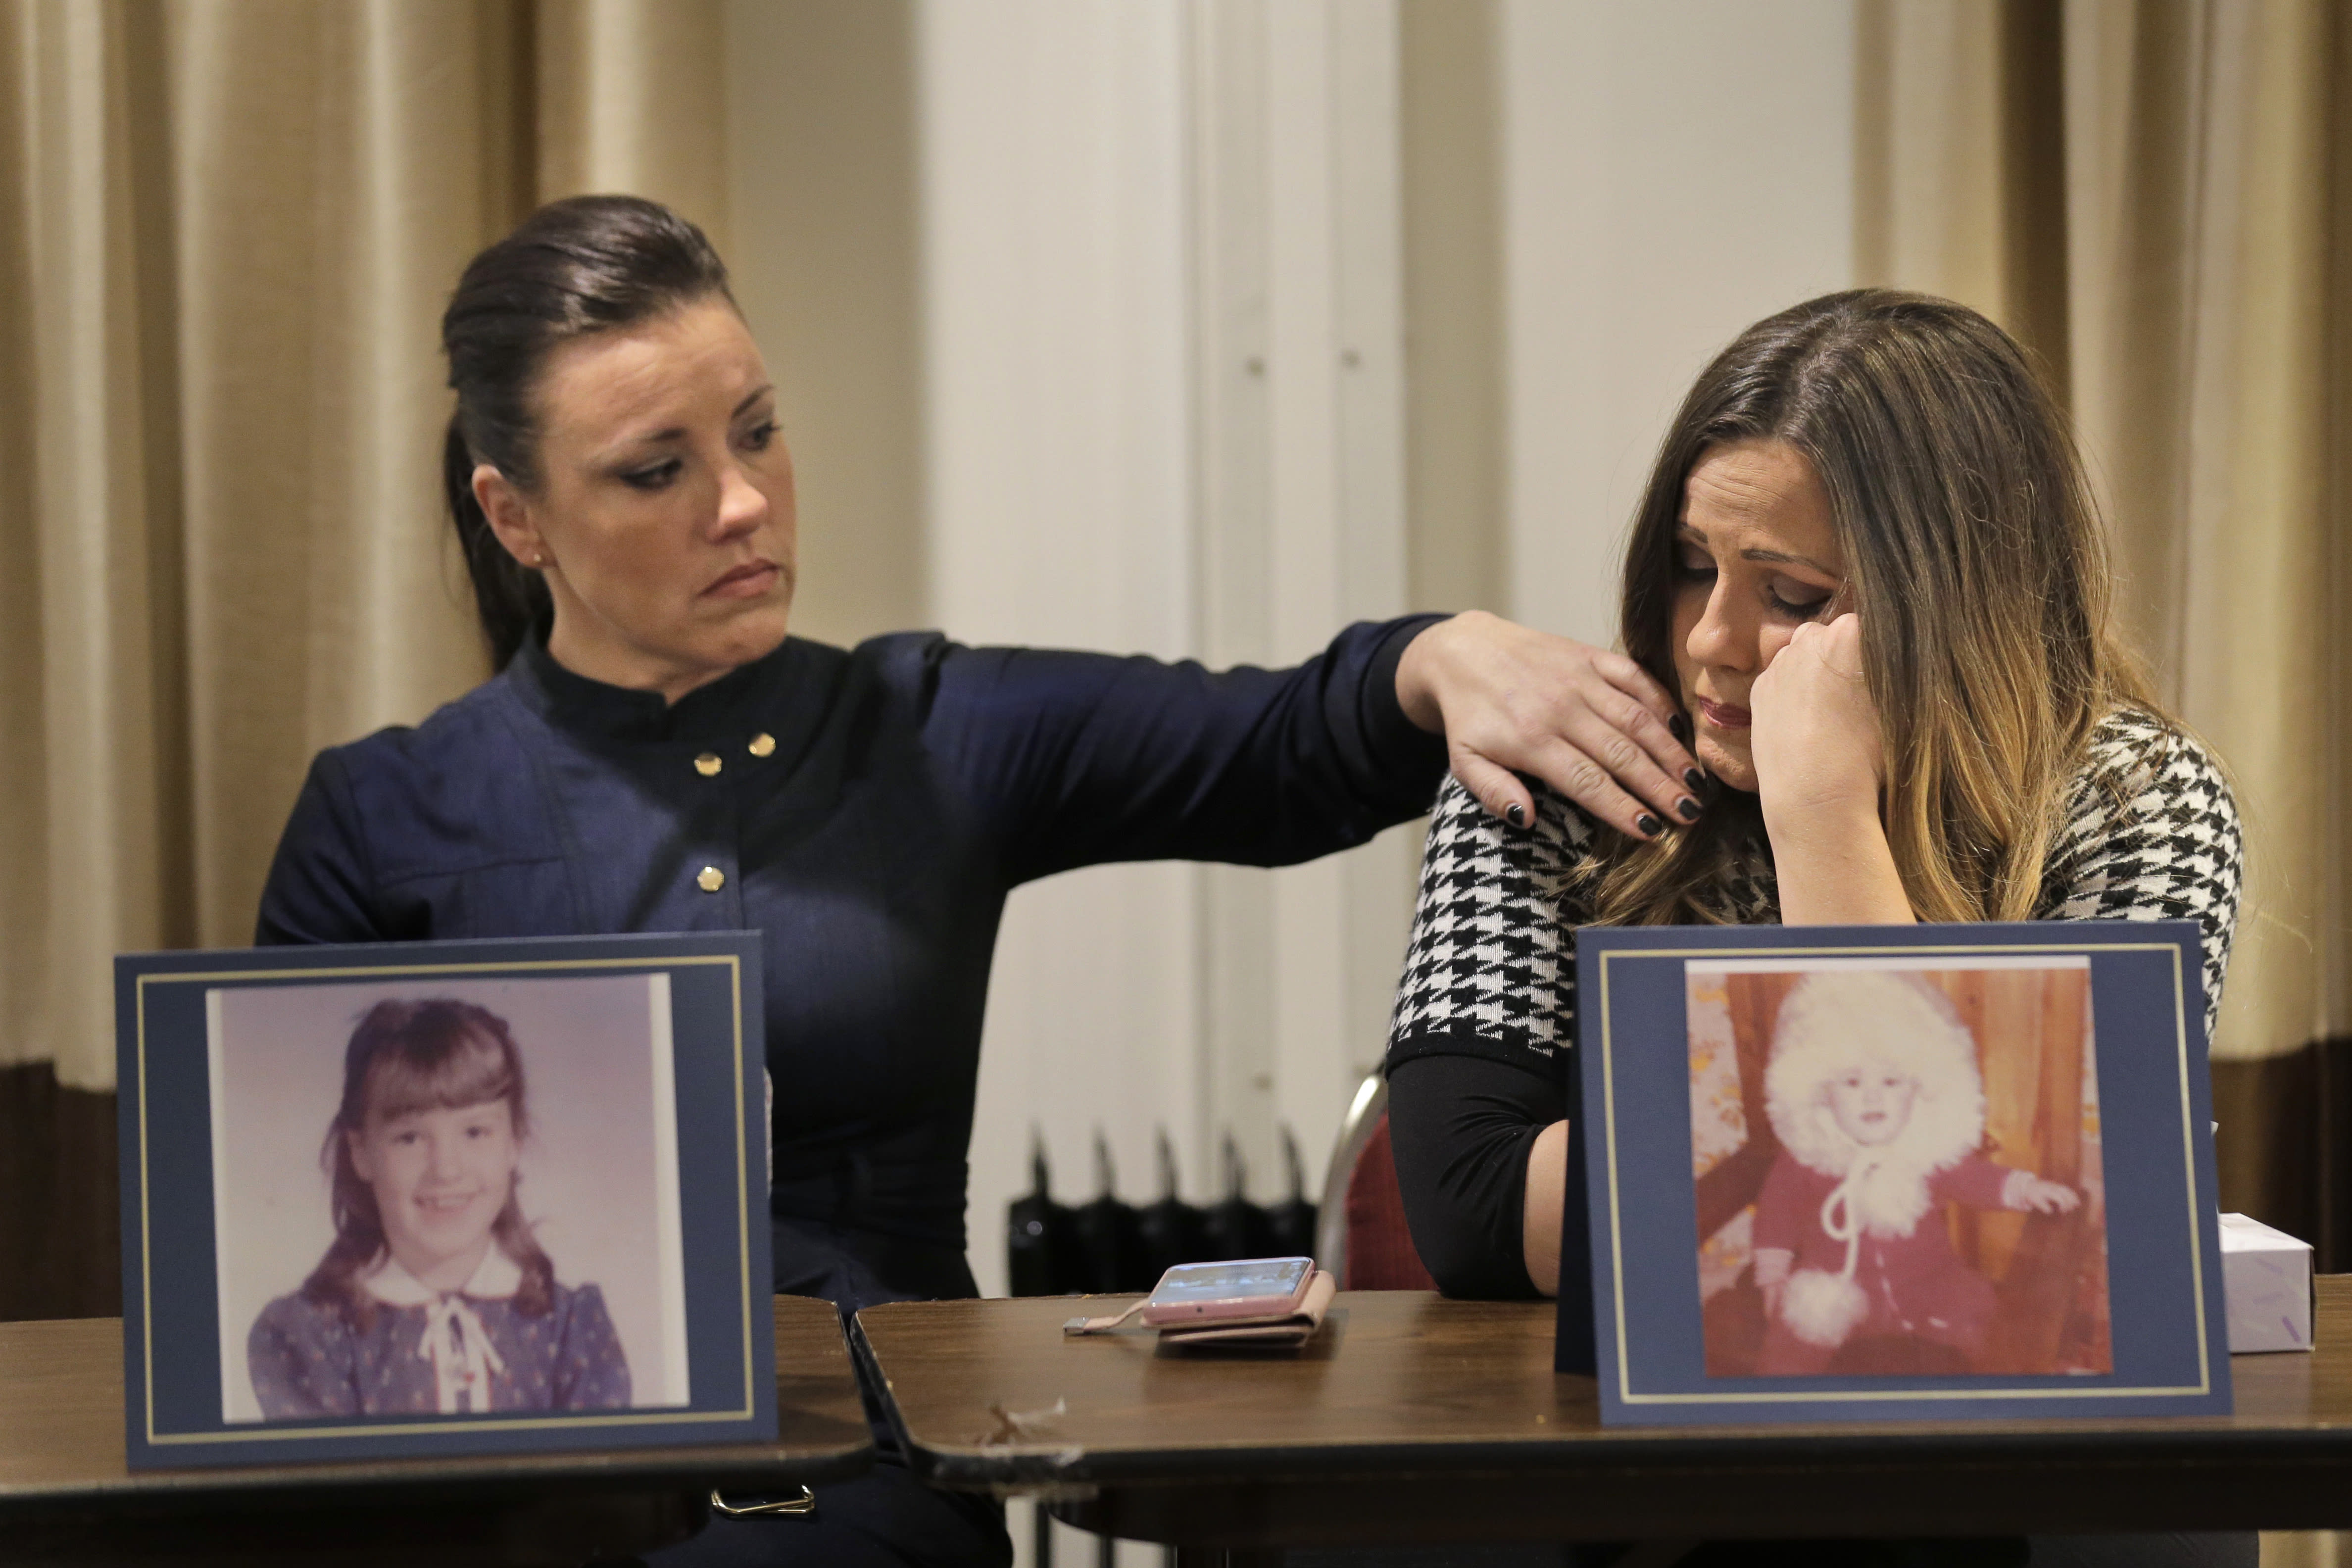 Teresa Forteny-Miller, left, comforts her sister Carolyn Fortney as they sit behind pictures of themselves as children as they listen to their other sisters speak during a news conference in Newark, N.J., Monday, Dec. 2, 2019. Two of the sisters from Pennsylvania are suing the Archdiocese of Newark and the Diocese of Harrisburg, Pennsylvania. They allege clergy in Newark knew a priest had sexually abused children before he moved to Harrisburg and abused them and their sisters for years. Lawsuits alleging sexual abuse by Roman Catholic clergy are taking center stage in New Jersey as the state's relaxation of statute of limitations rules takes effect. (AP Photo/Seth Wenig)